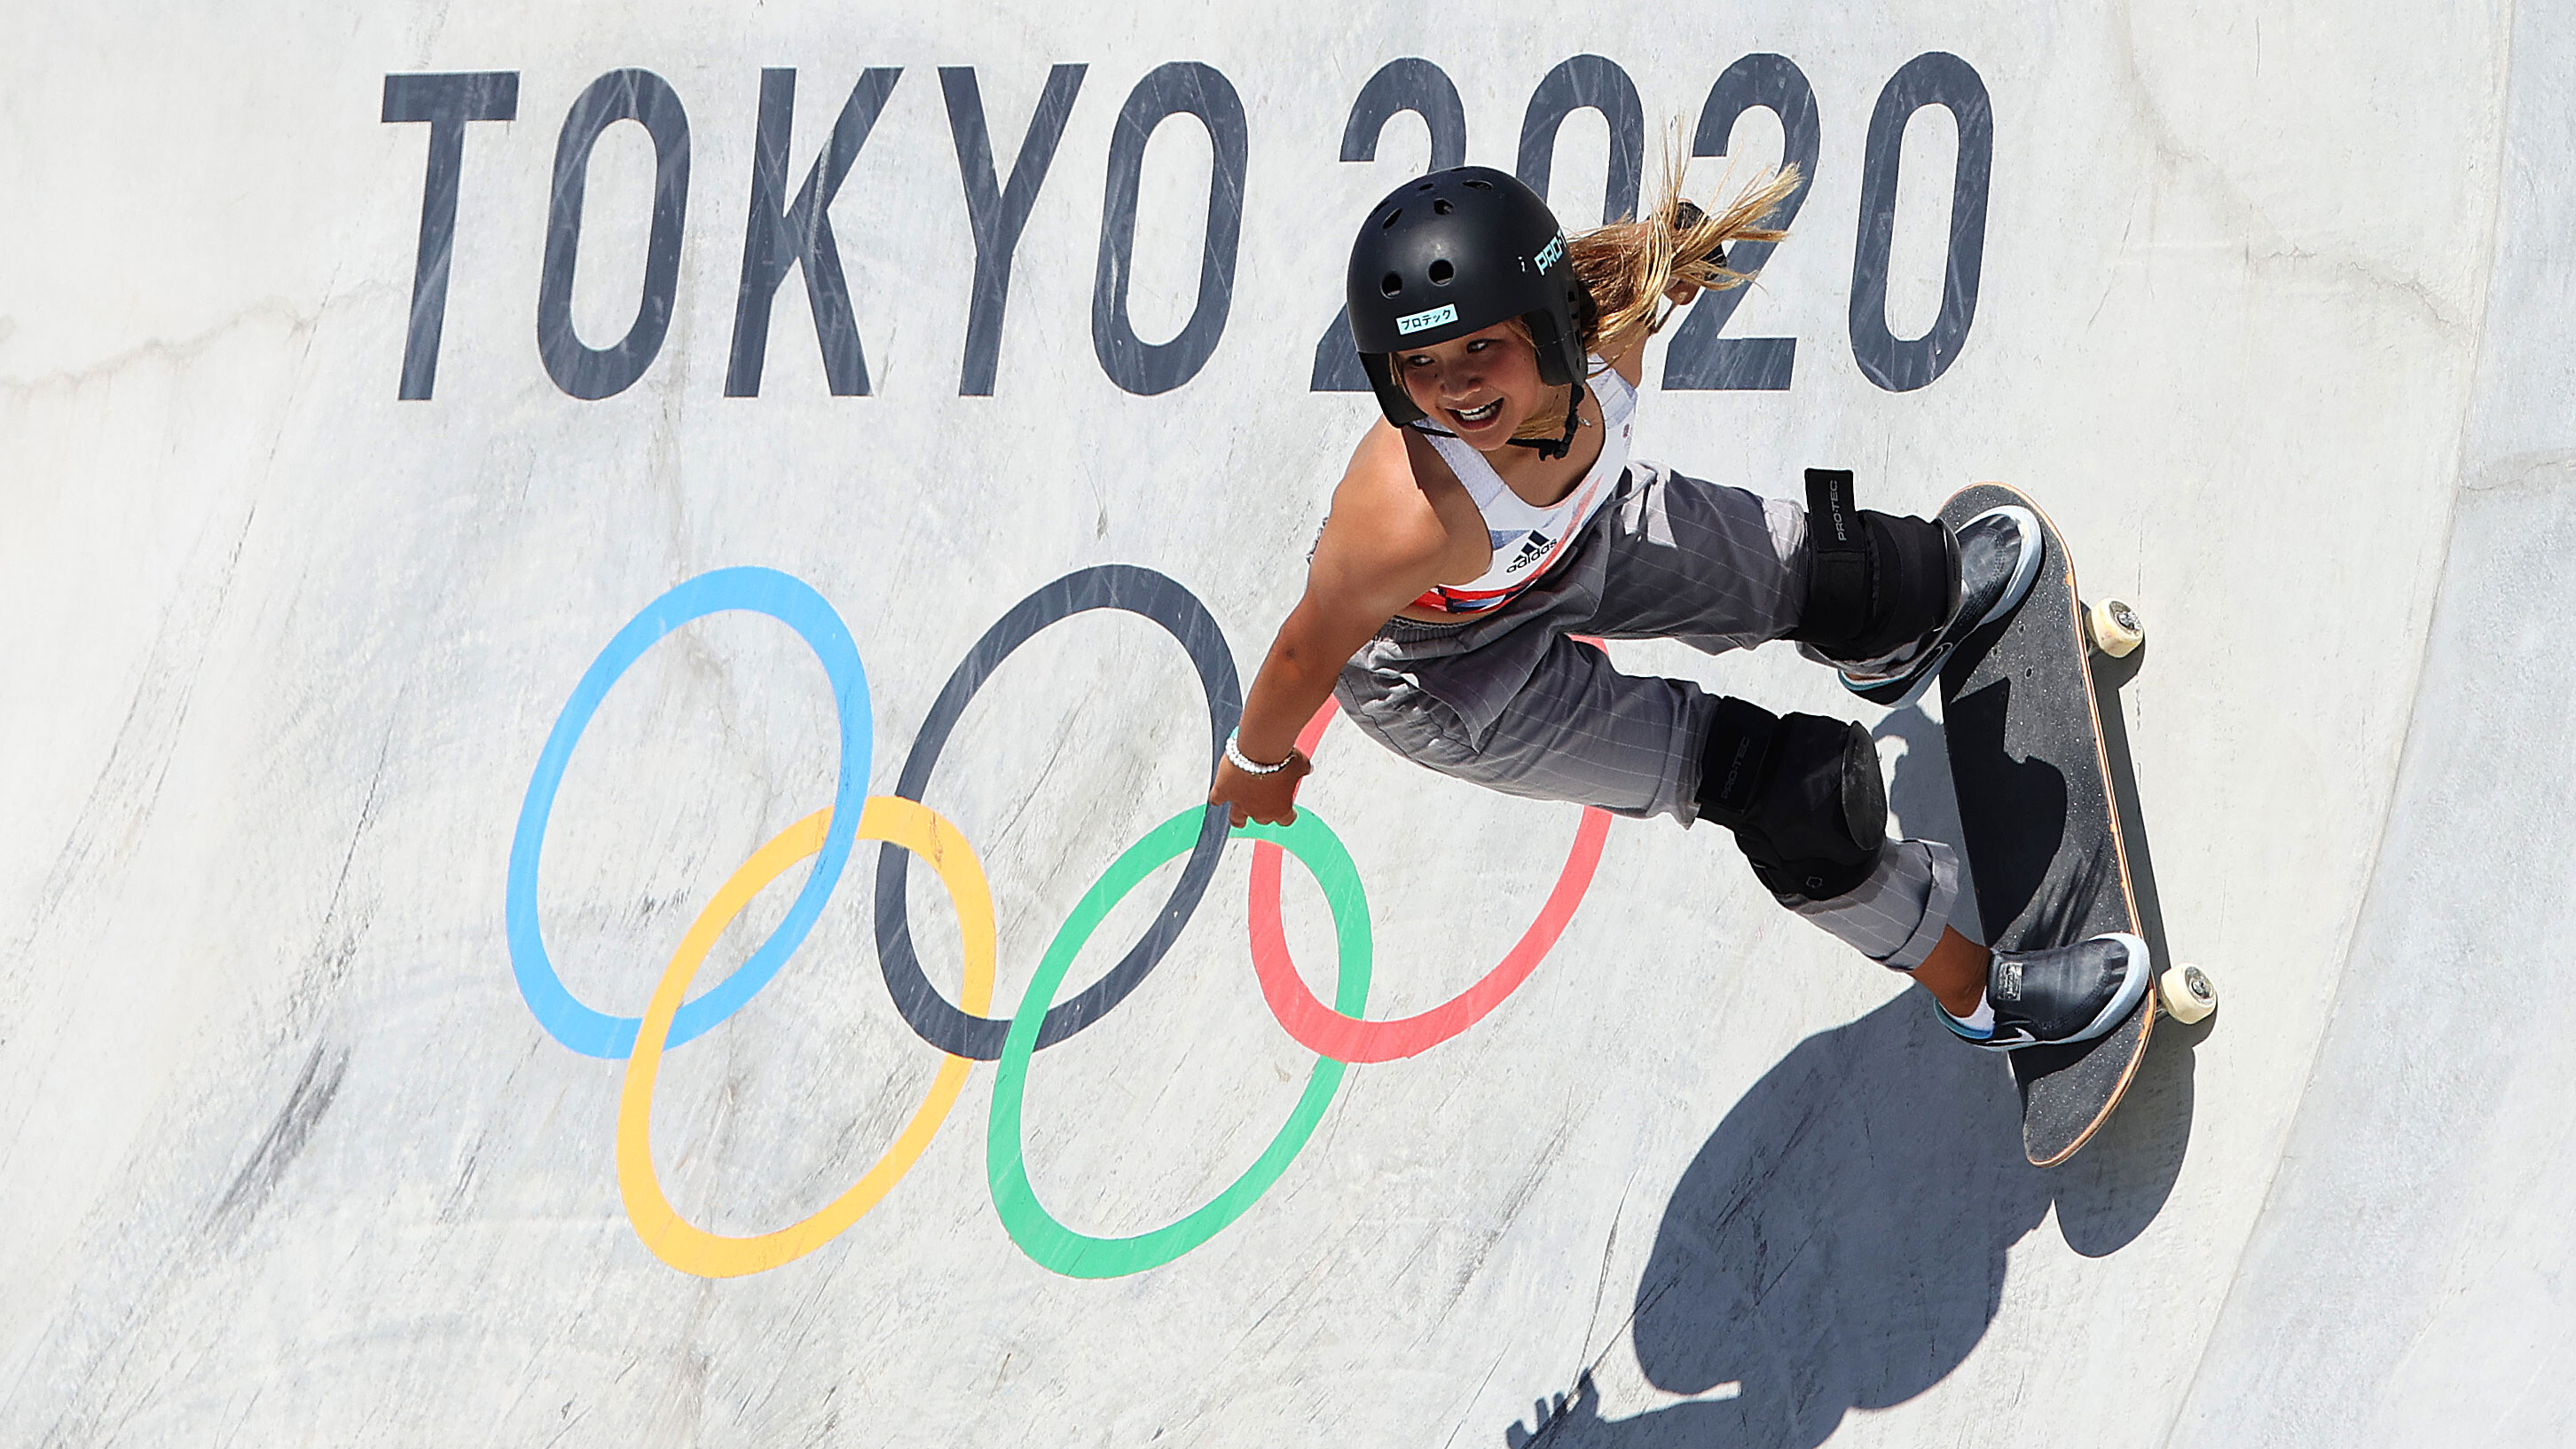 Teenage skateboard sensation Sky Brown saddened by plight of Afghan girls, saying 'girls can do anything that boys can do but even better'